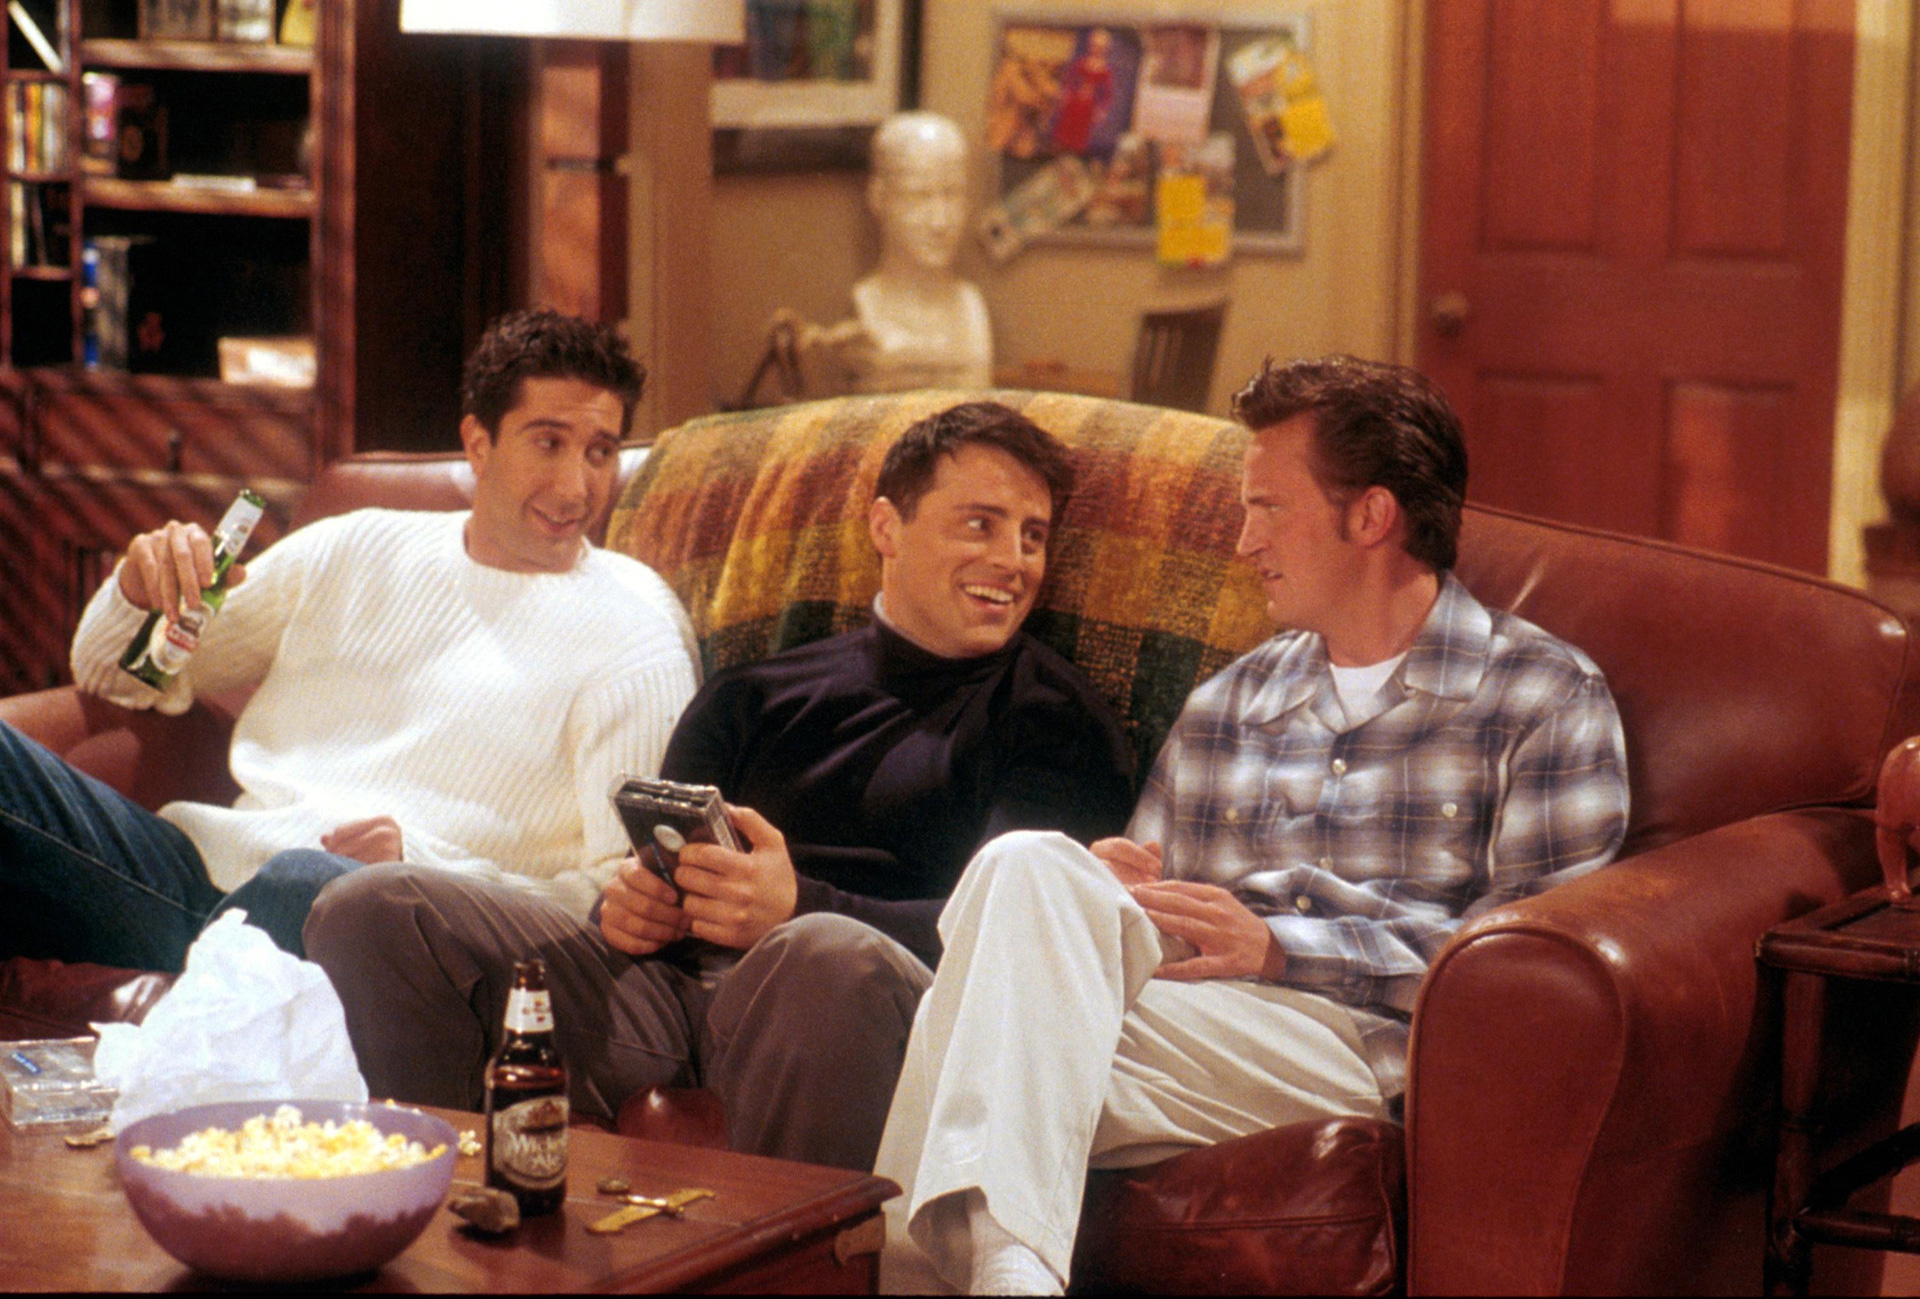 Ross, Joey and Chandler from Friends